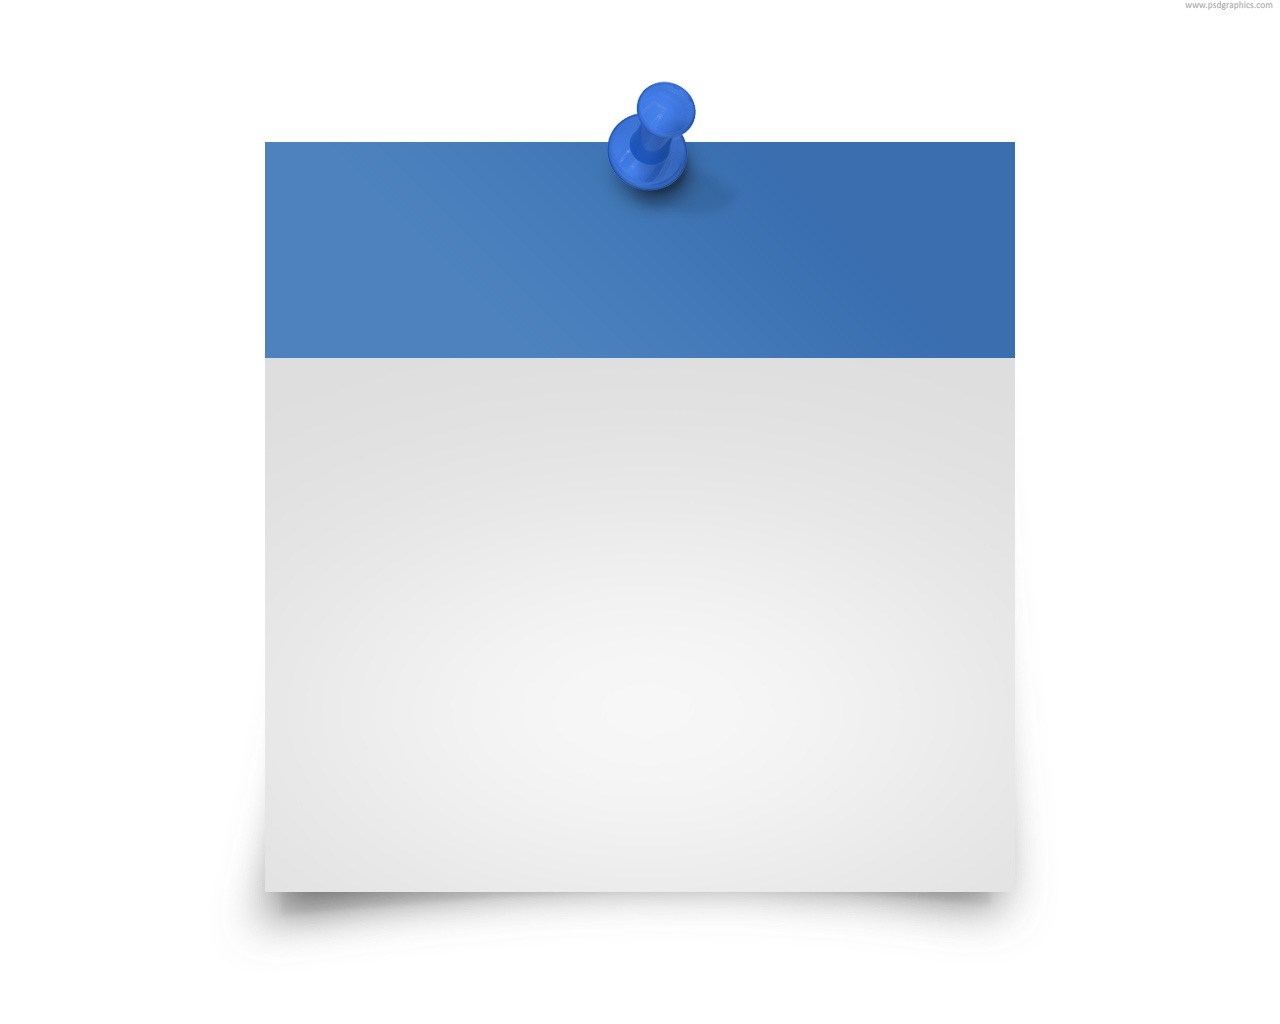 Blank Calendar Day Icon : Blank blue calendar icon images daily